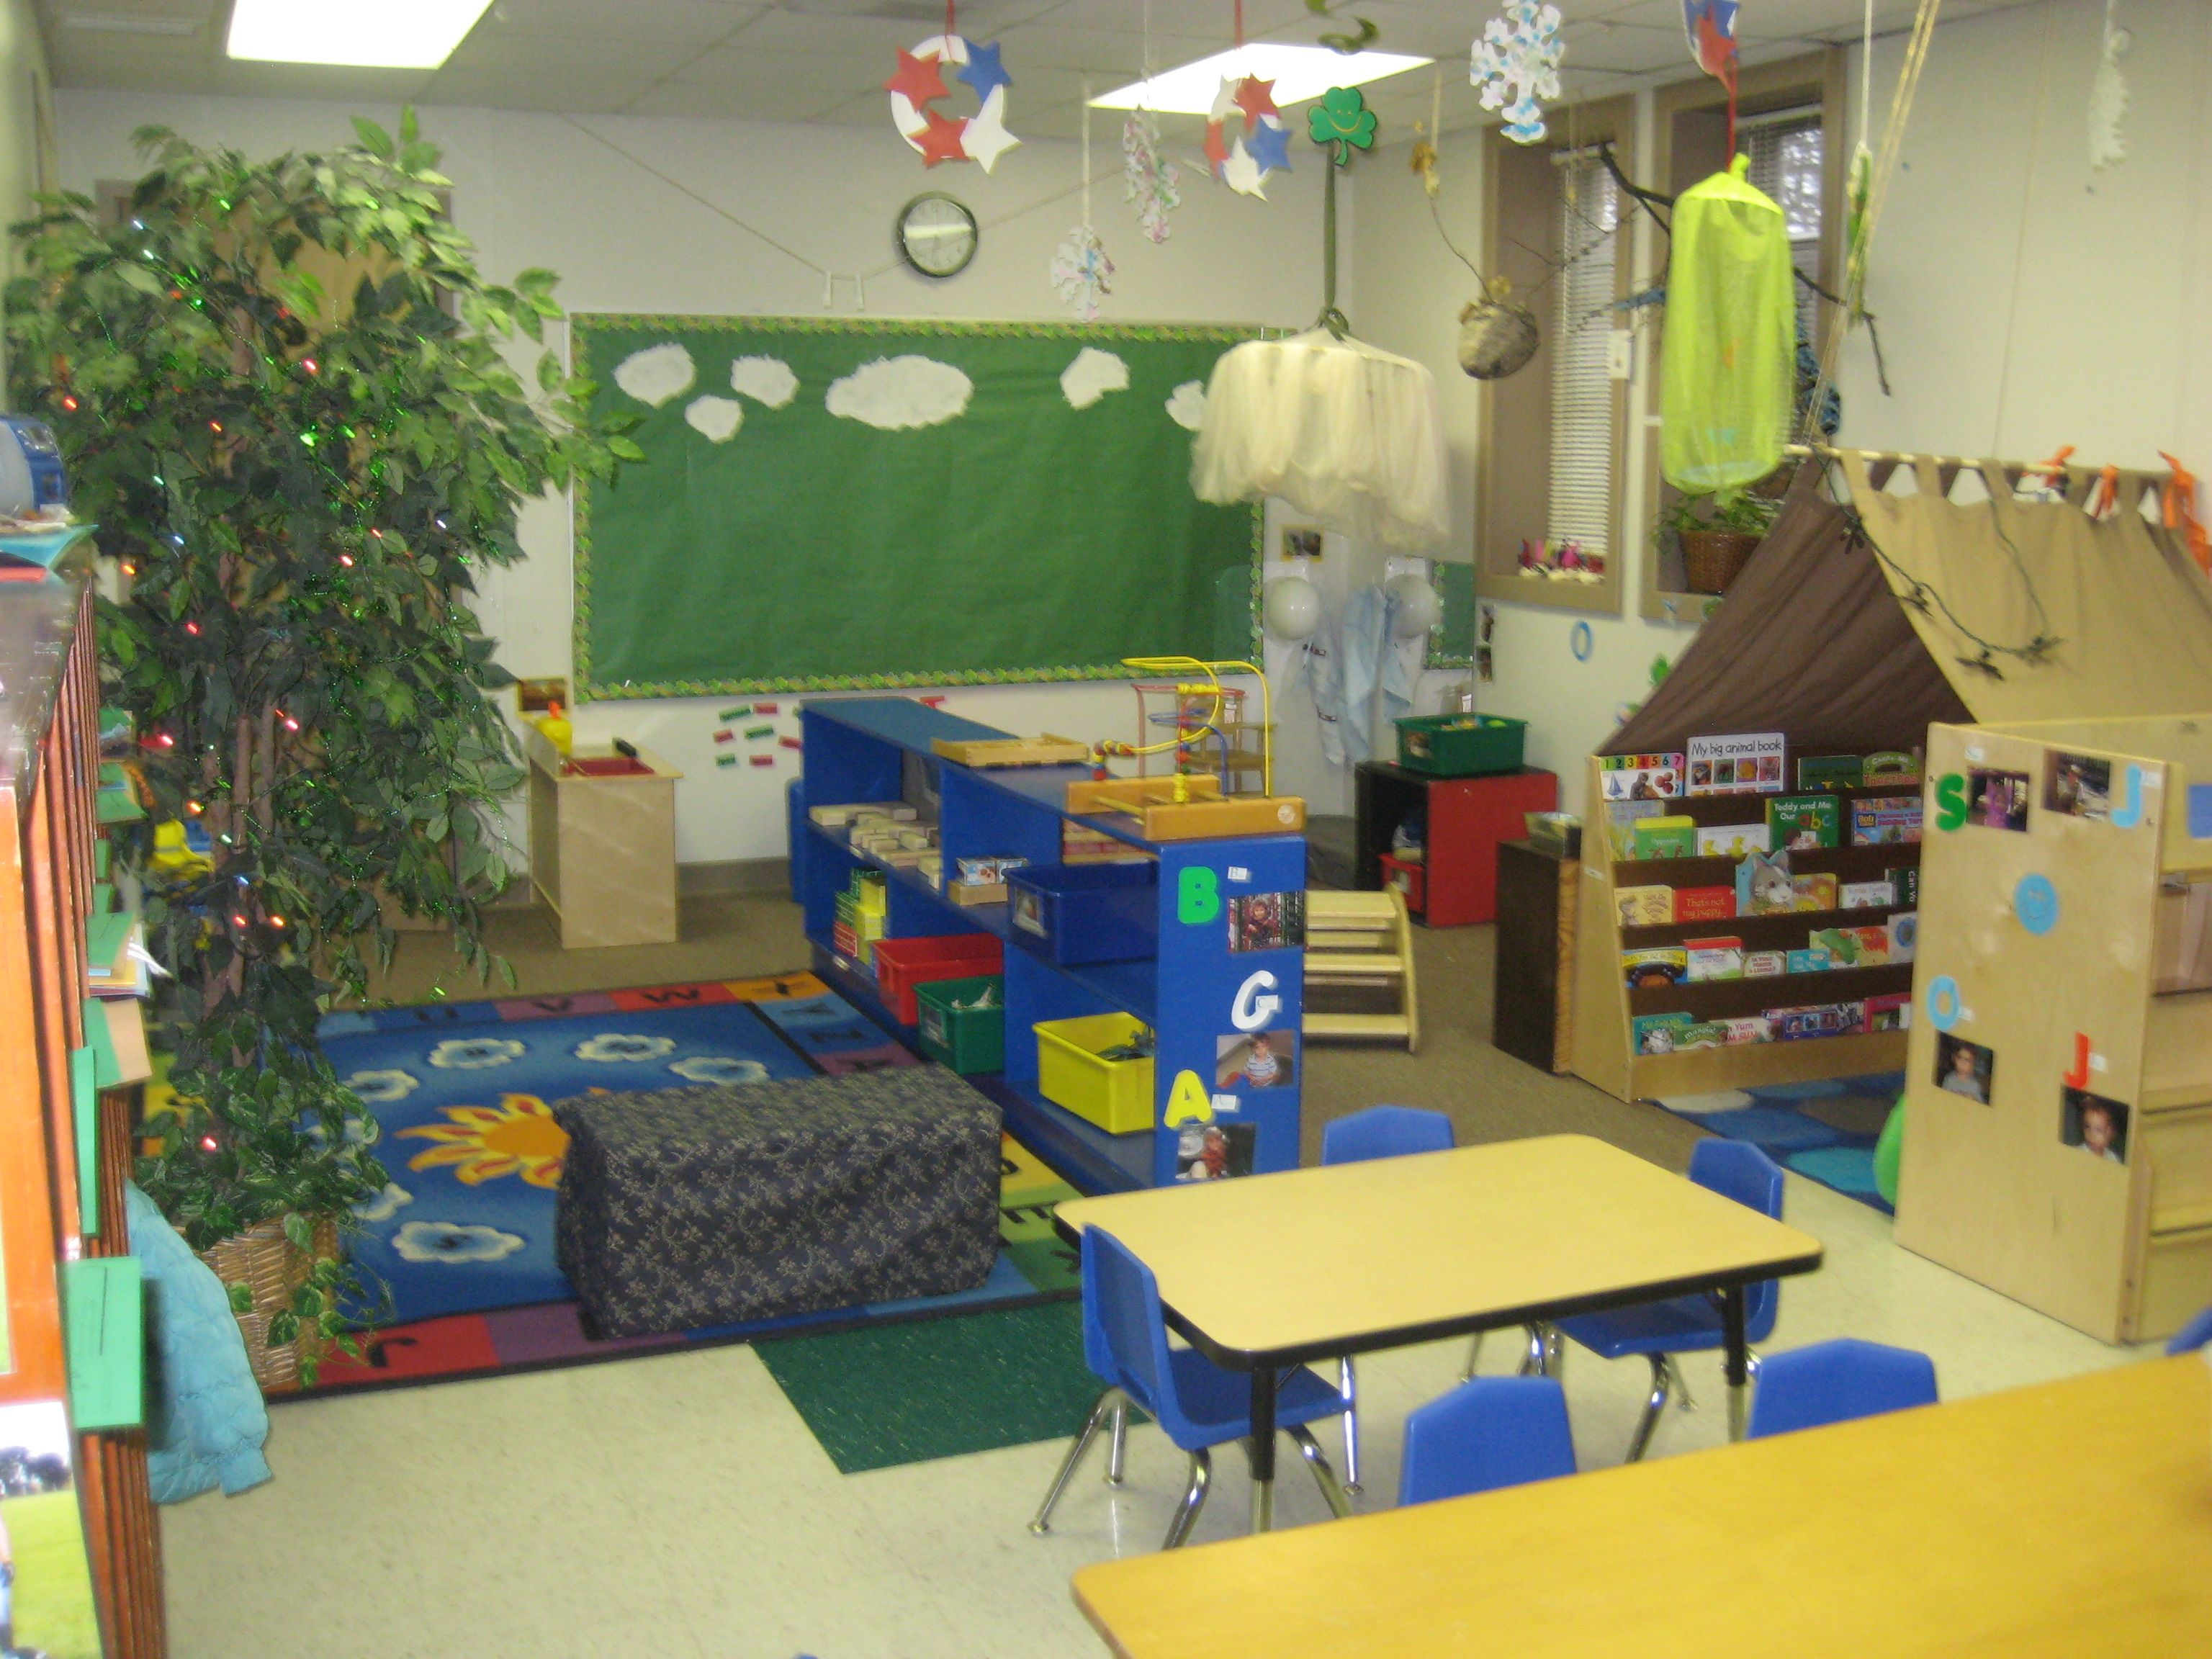 Classroom Ideas For 2 Year Olds ~ Year old classroom with a variety of age appropriate